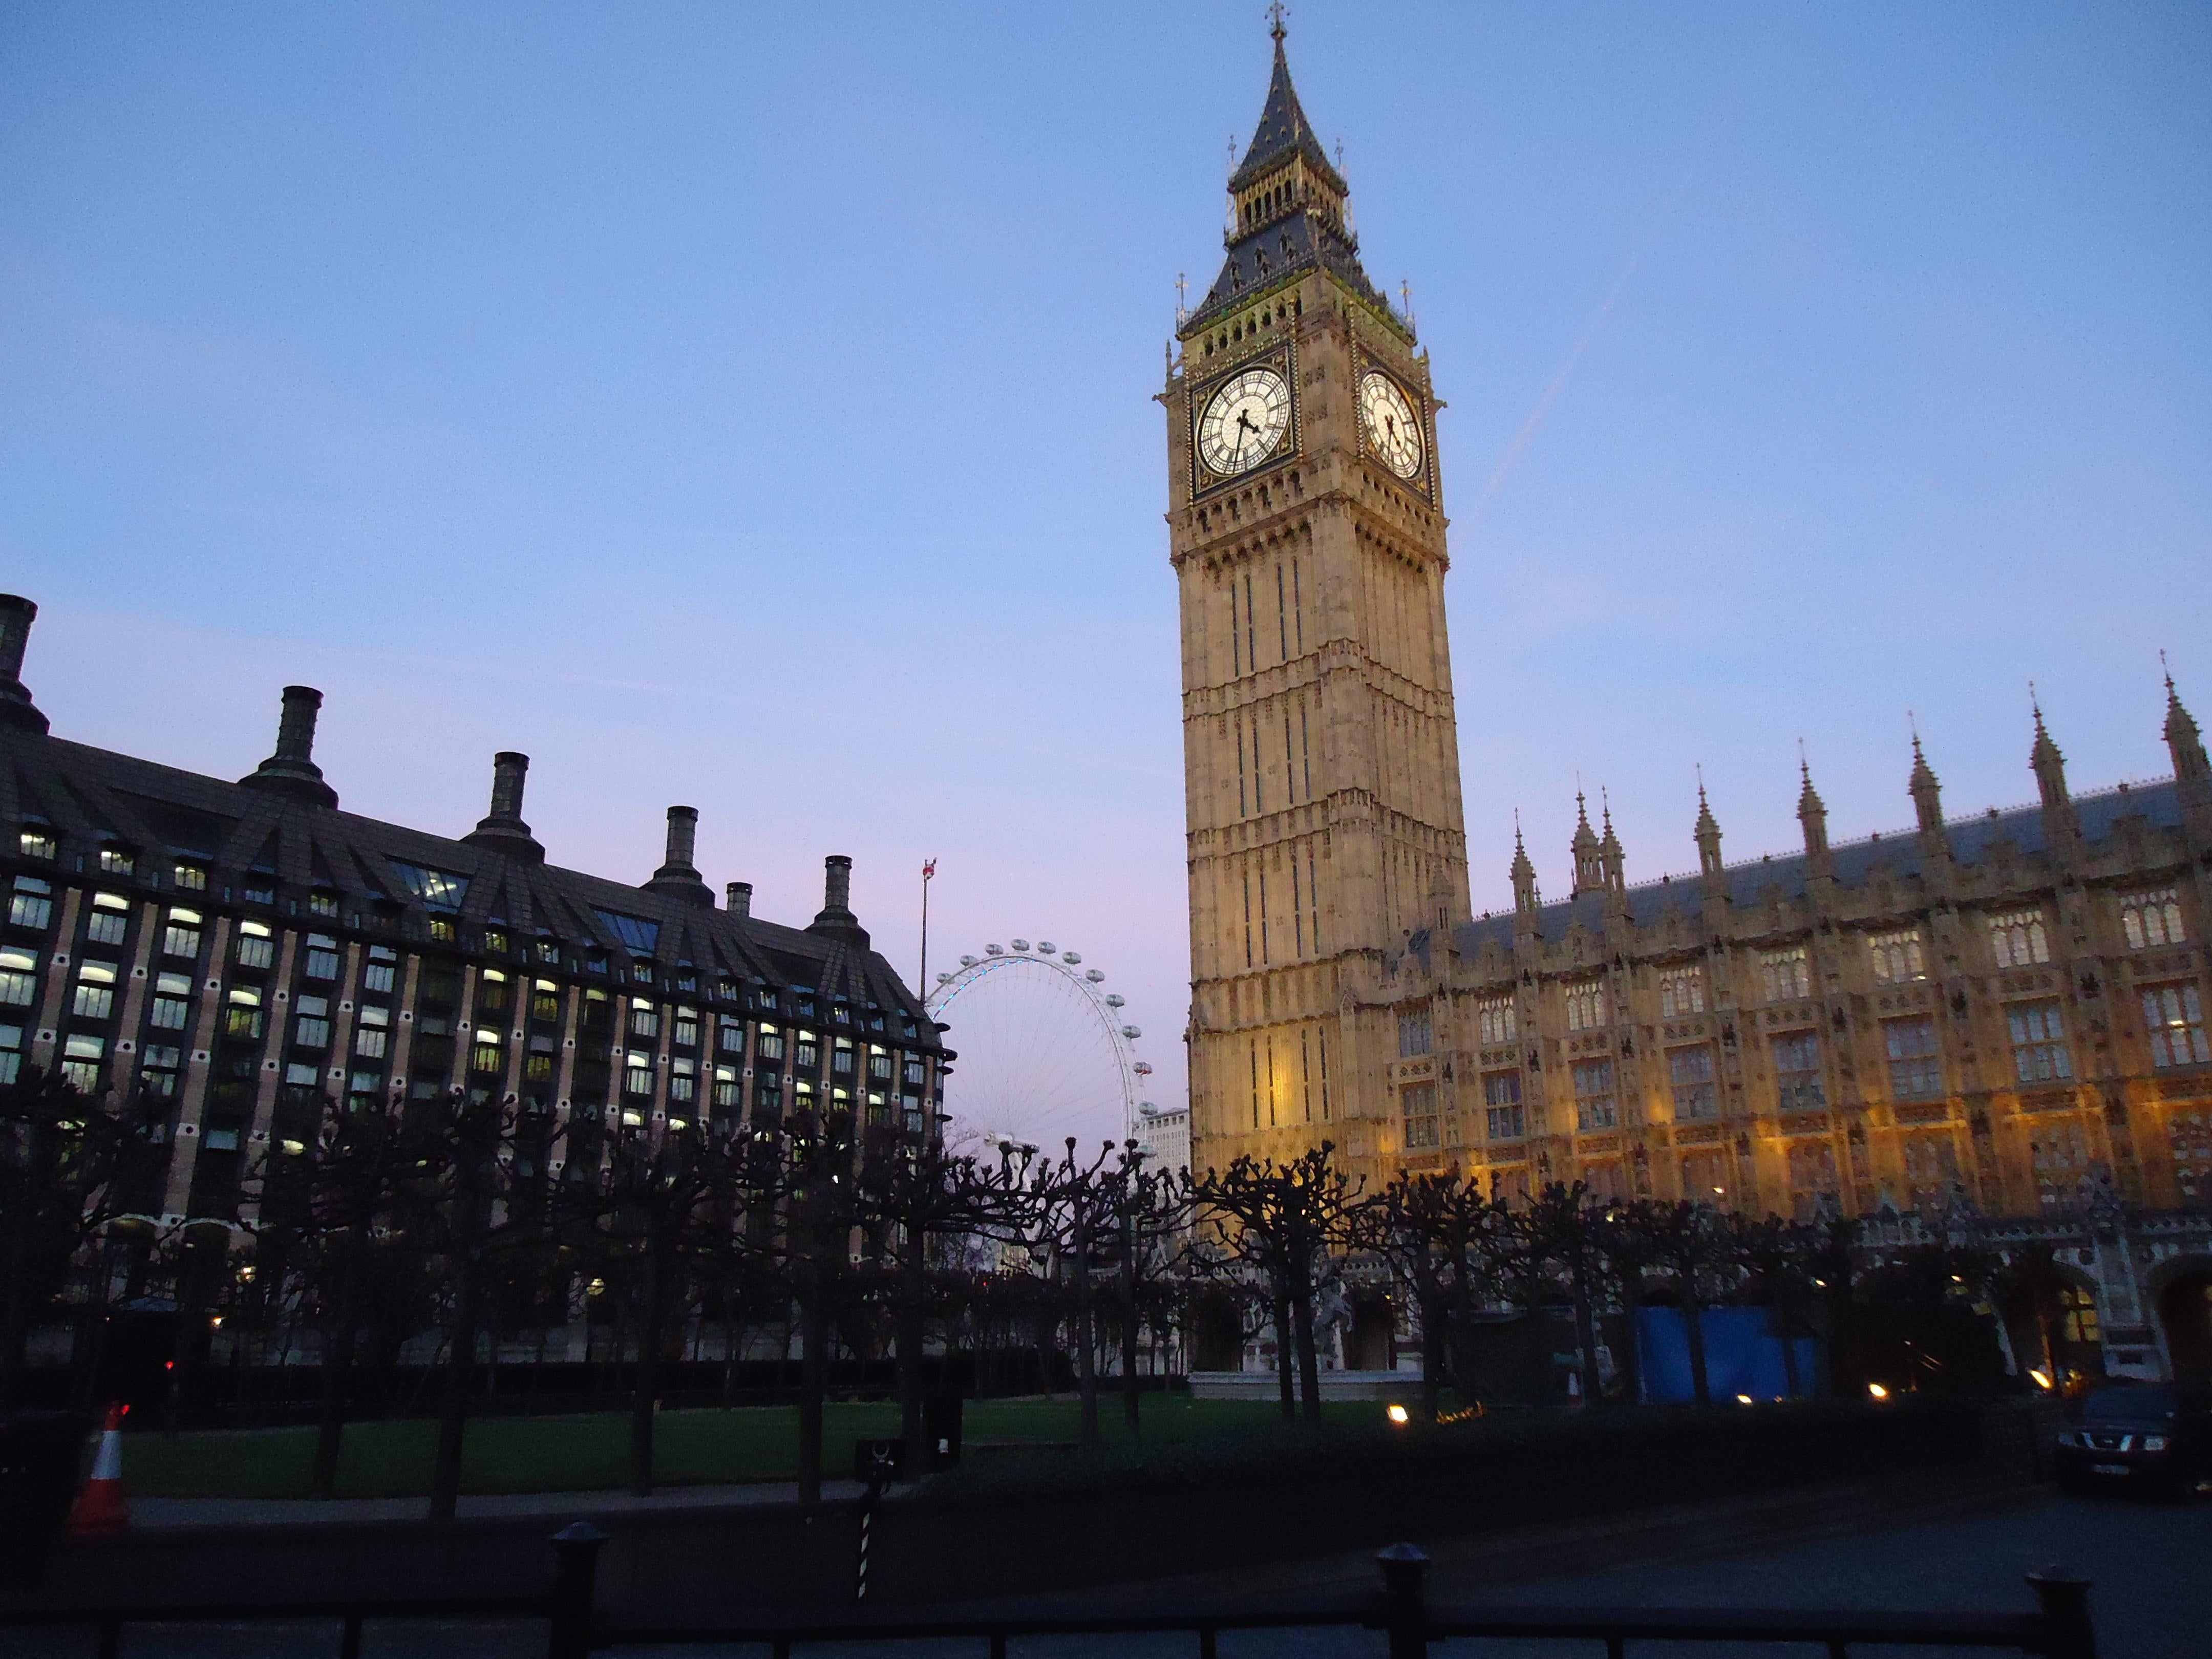 City in Big Ben